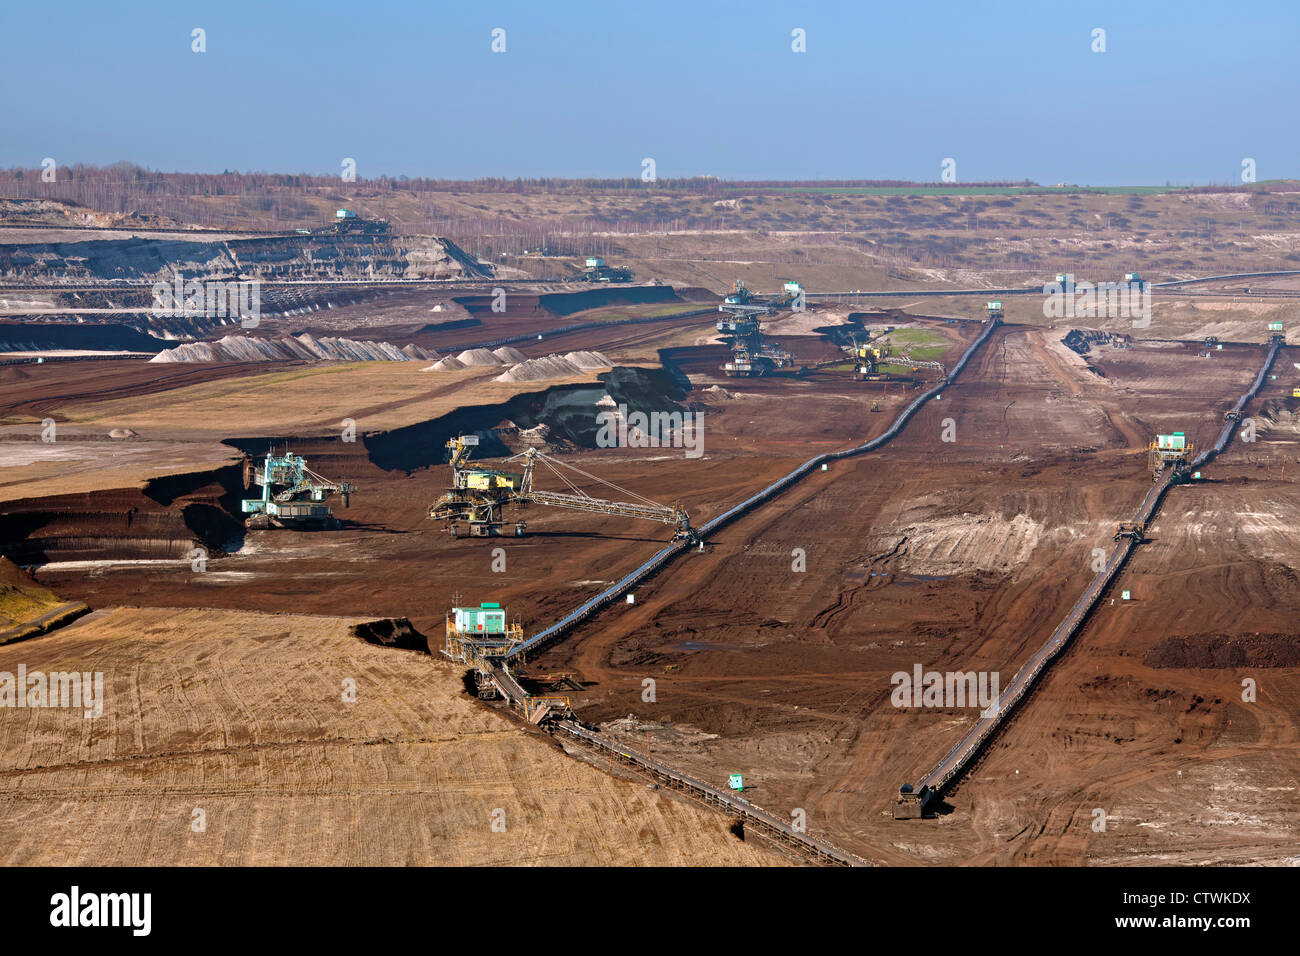 Brown coal / lignite being extracted by huge bucket-wheel excavators at open-pit mine, Saxony-Anhalt, Germany - Stock Image